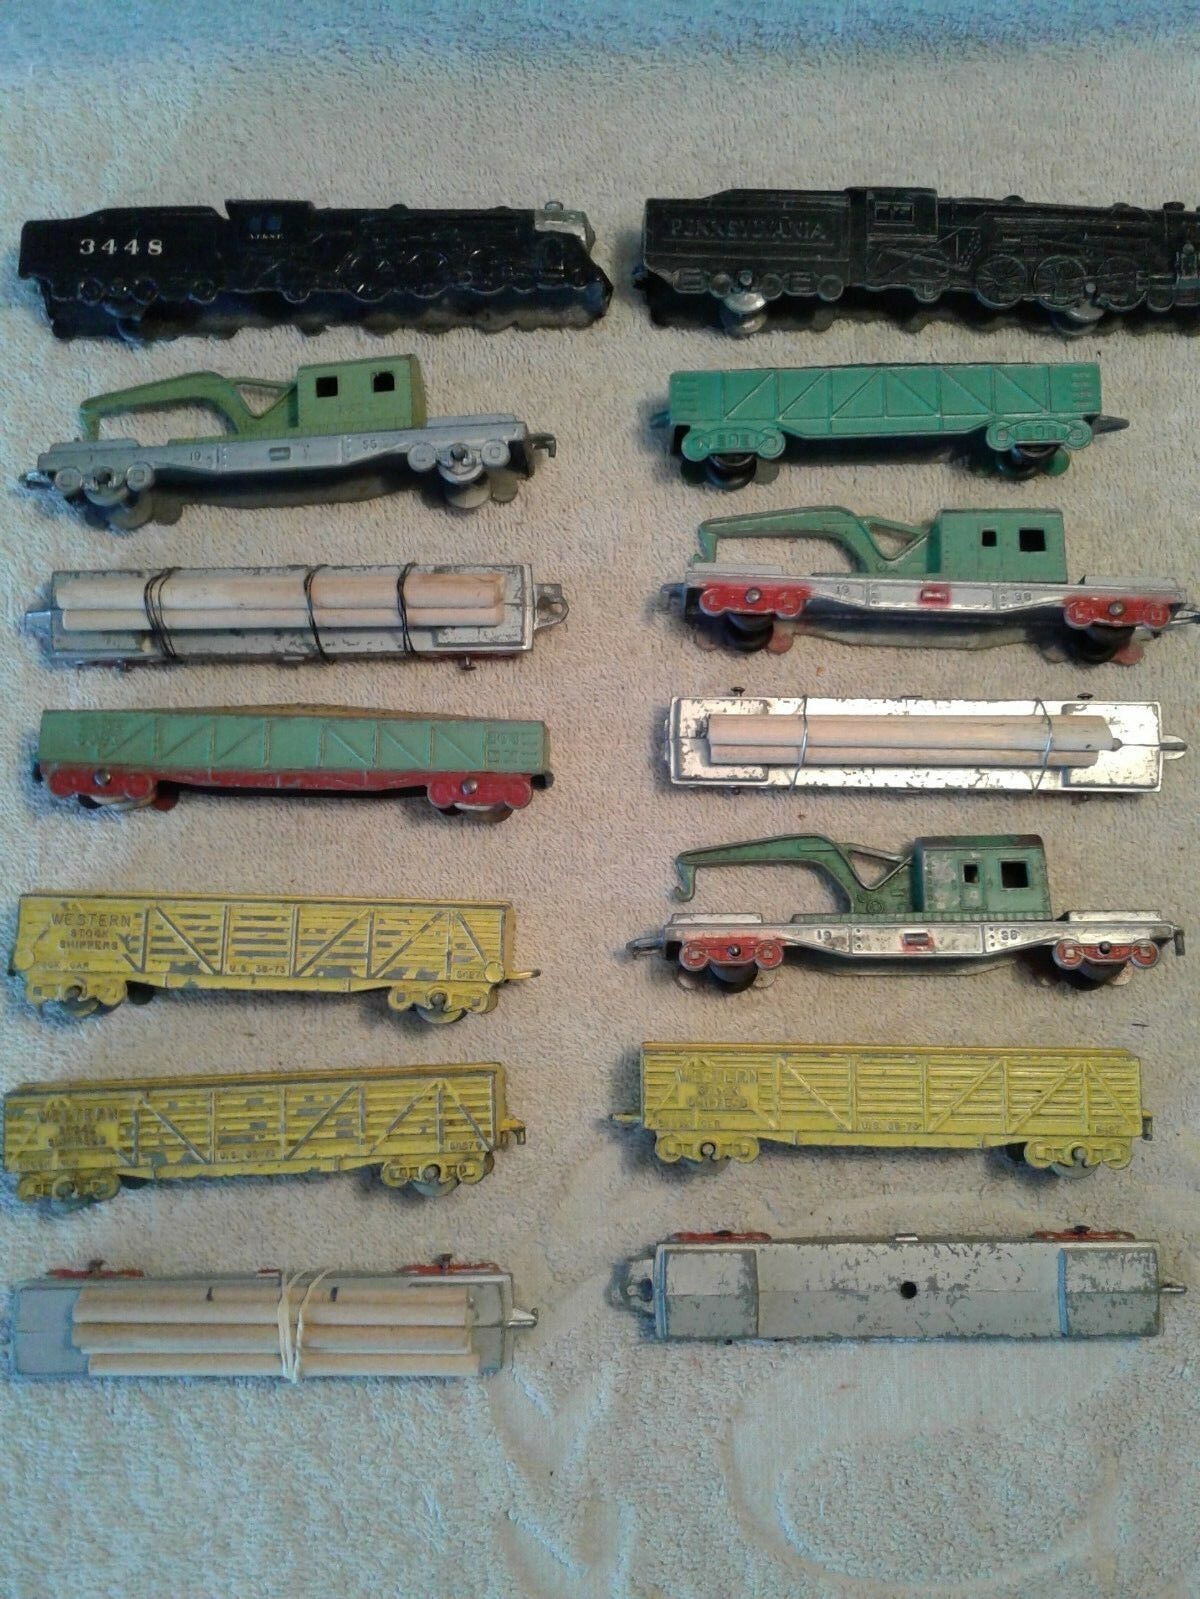 14 Piece 2 Sets  of Tootsietoy & Criterion Freight Trains, Crane Cars, Log Cars